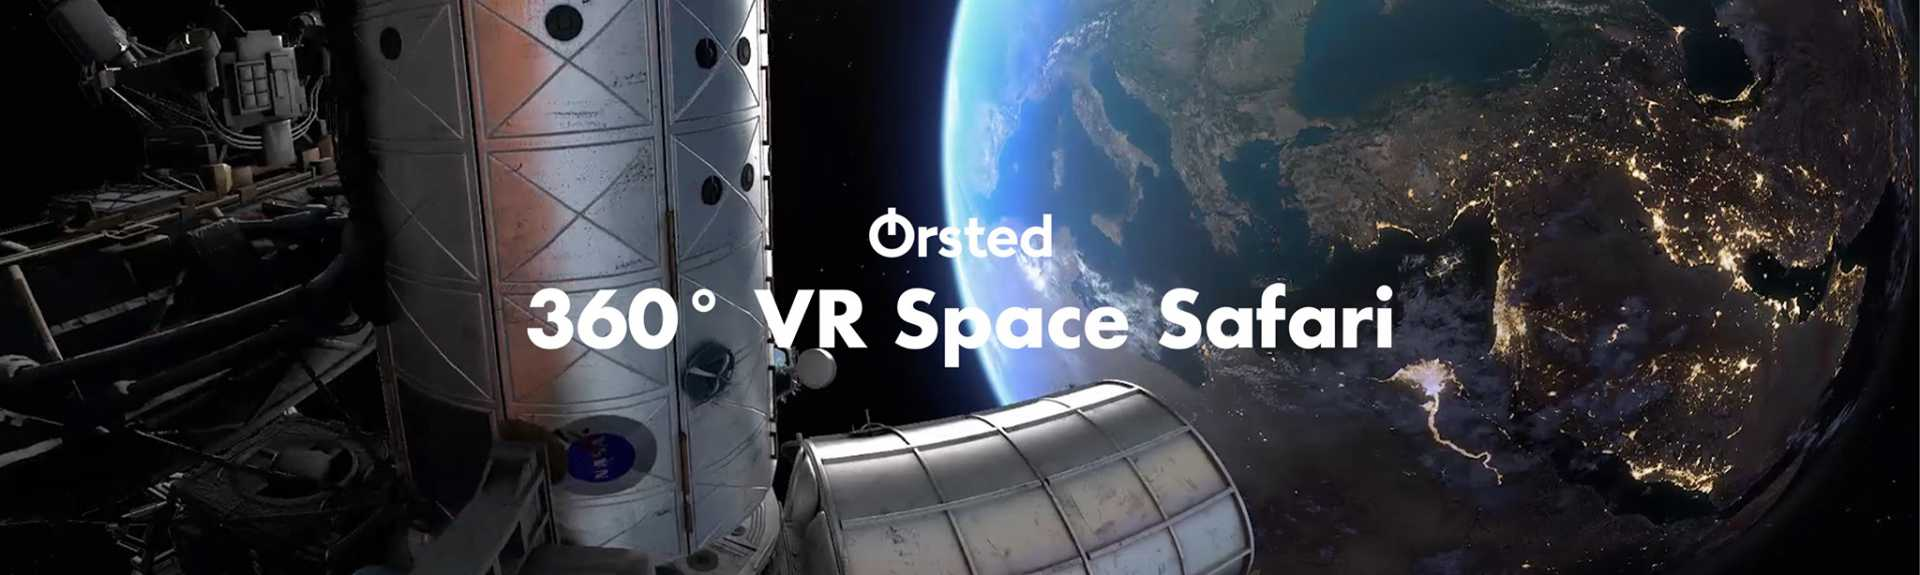 Orsted 360° VR Space Safari